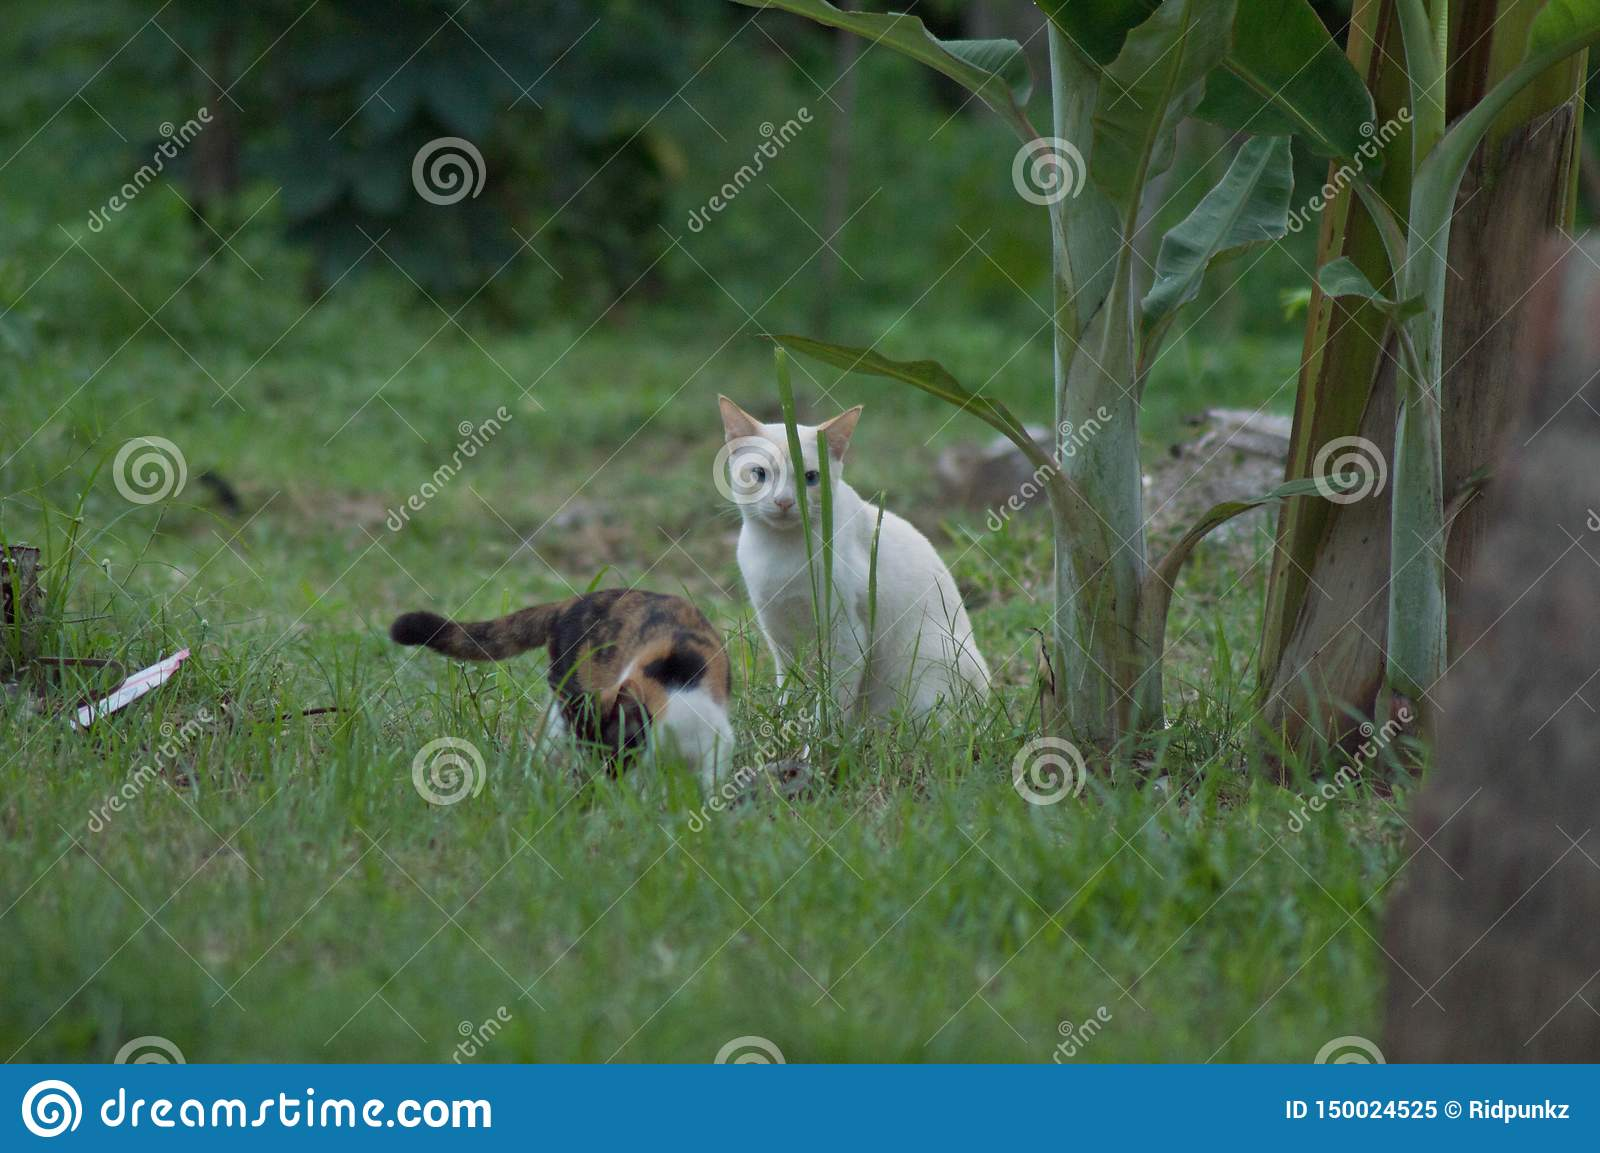 White cat playing around with another in the grasses